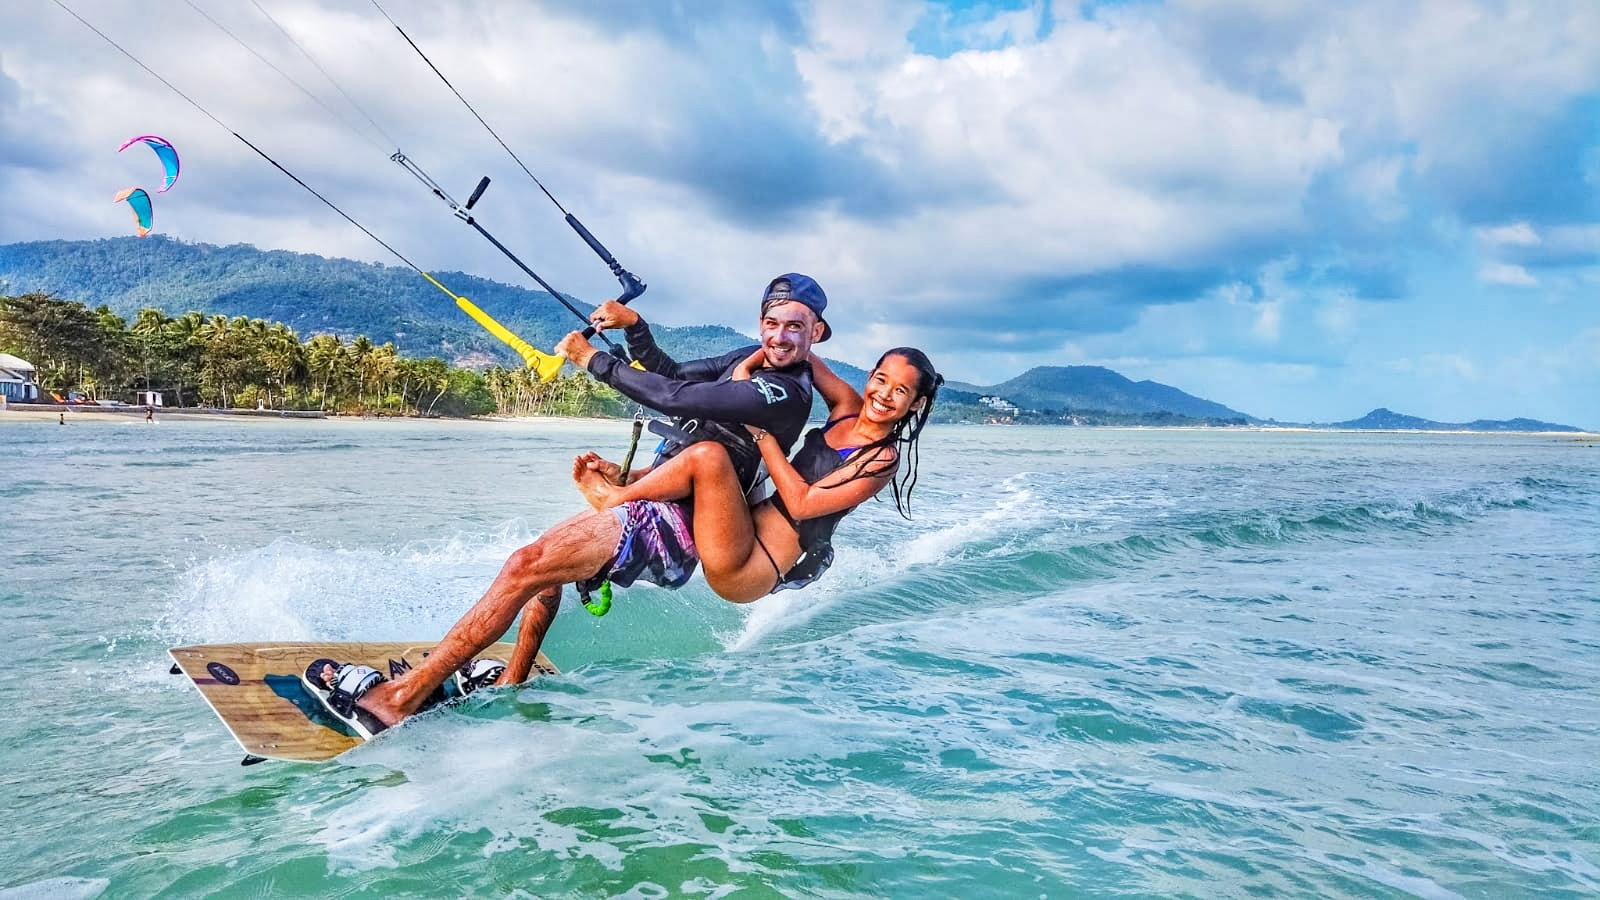 Kitesurfer riding with girl on his back in calm waters.